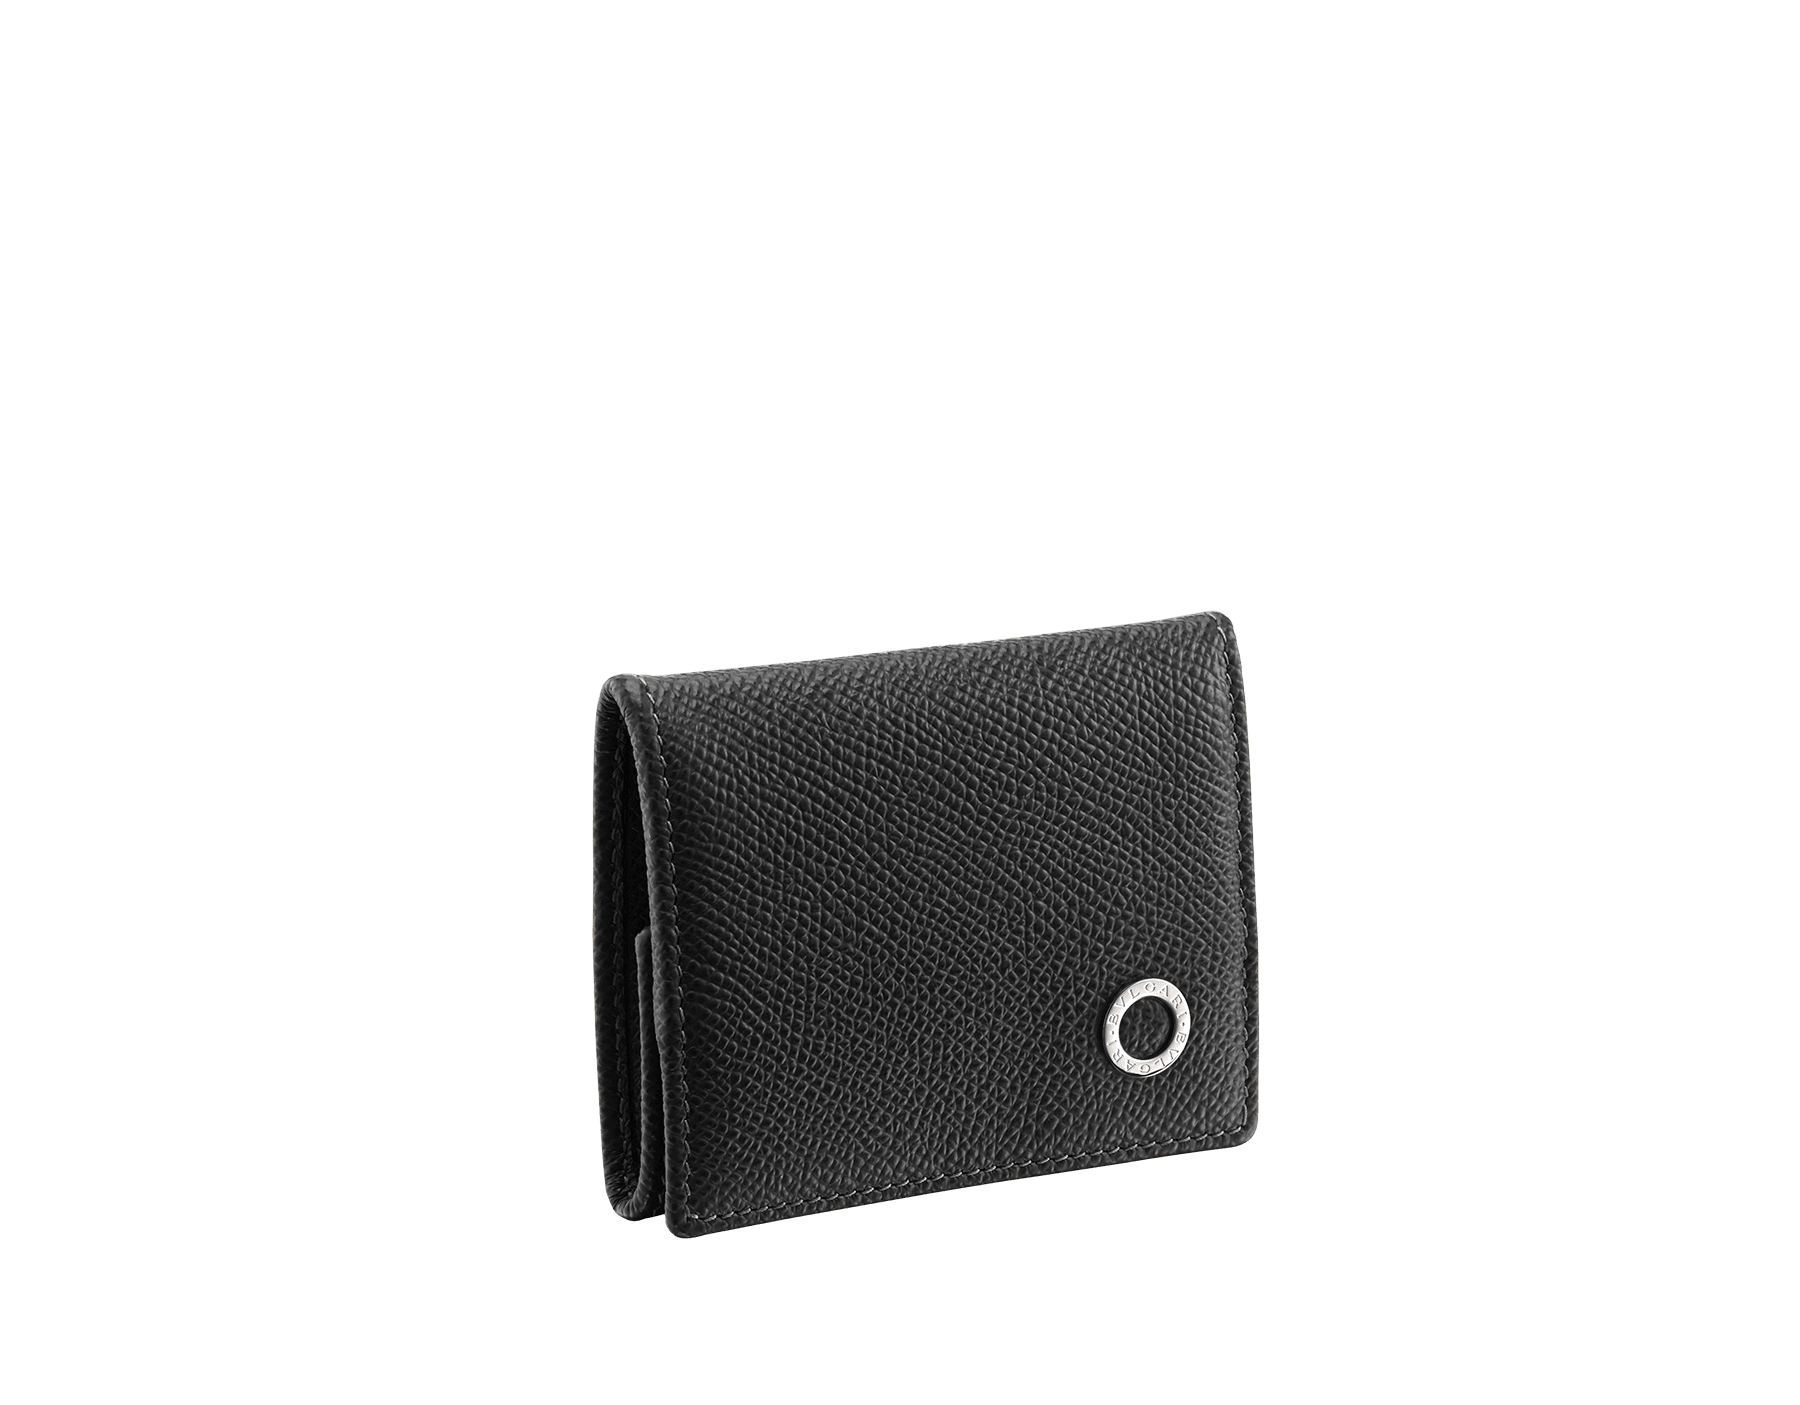 Coin holder in black grain calf leather with brass palladium plated hardware featuring the Bvlgari-Bvlgari motif. Flap closure with press button. 282231 image 1